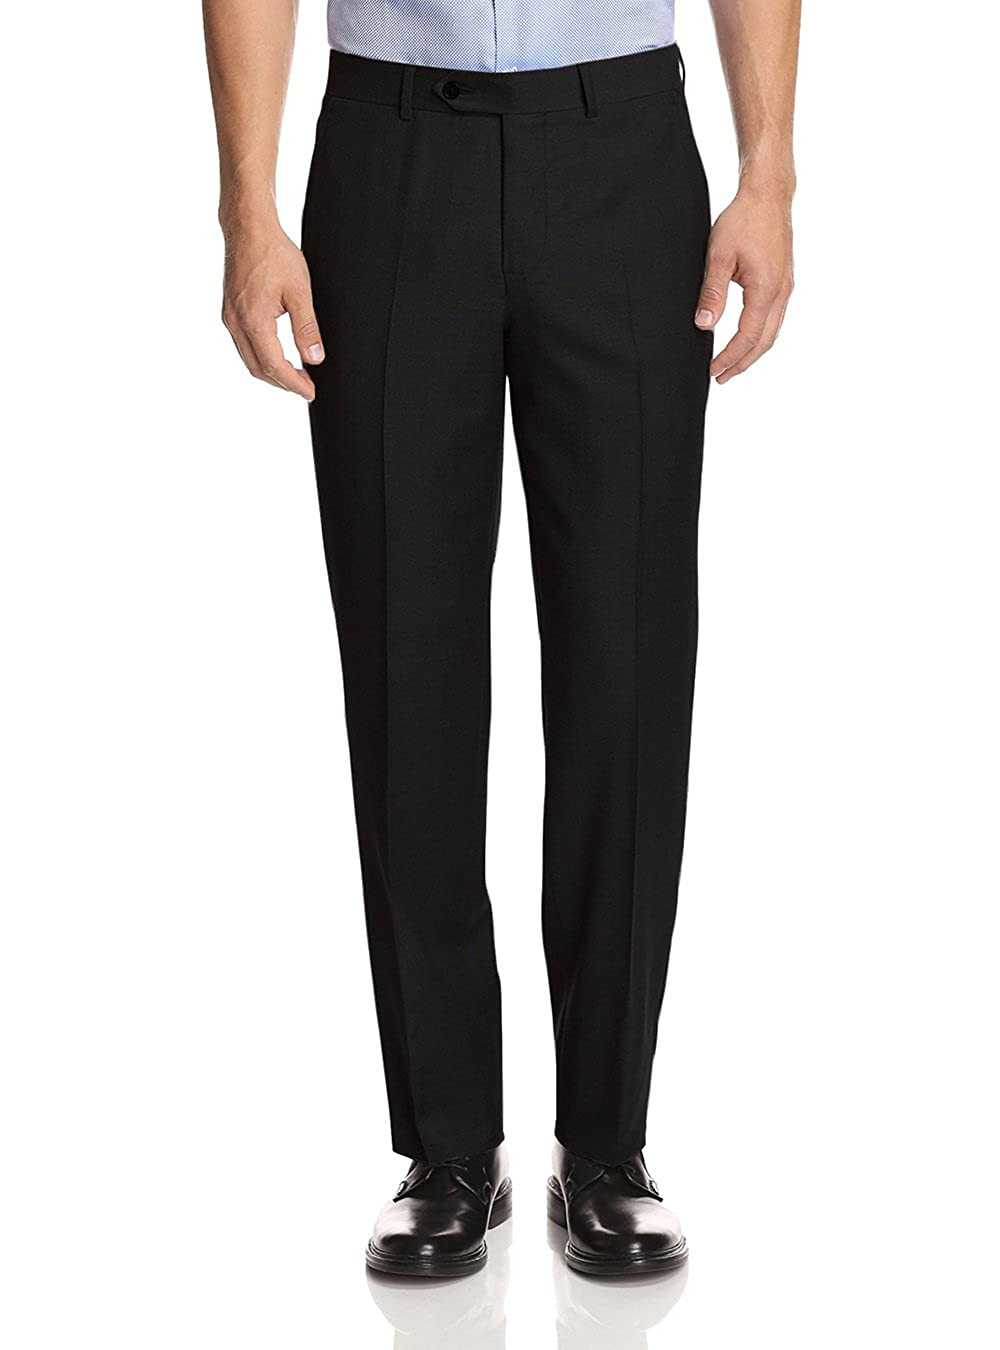 49cac0f57e Men s Flat Front Dress Pants - Suit Separate Piece Length Unhemmed